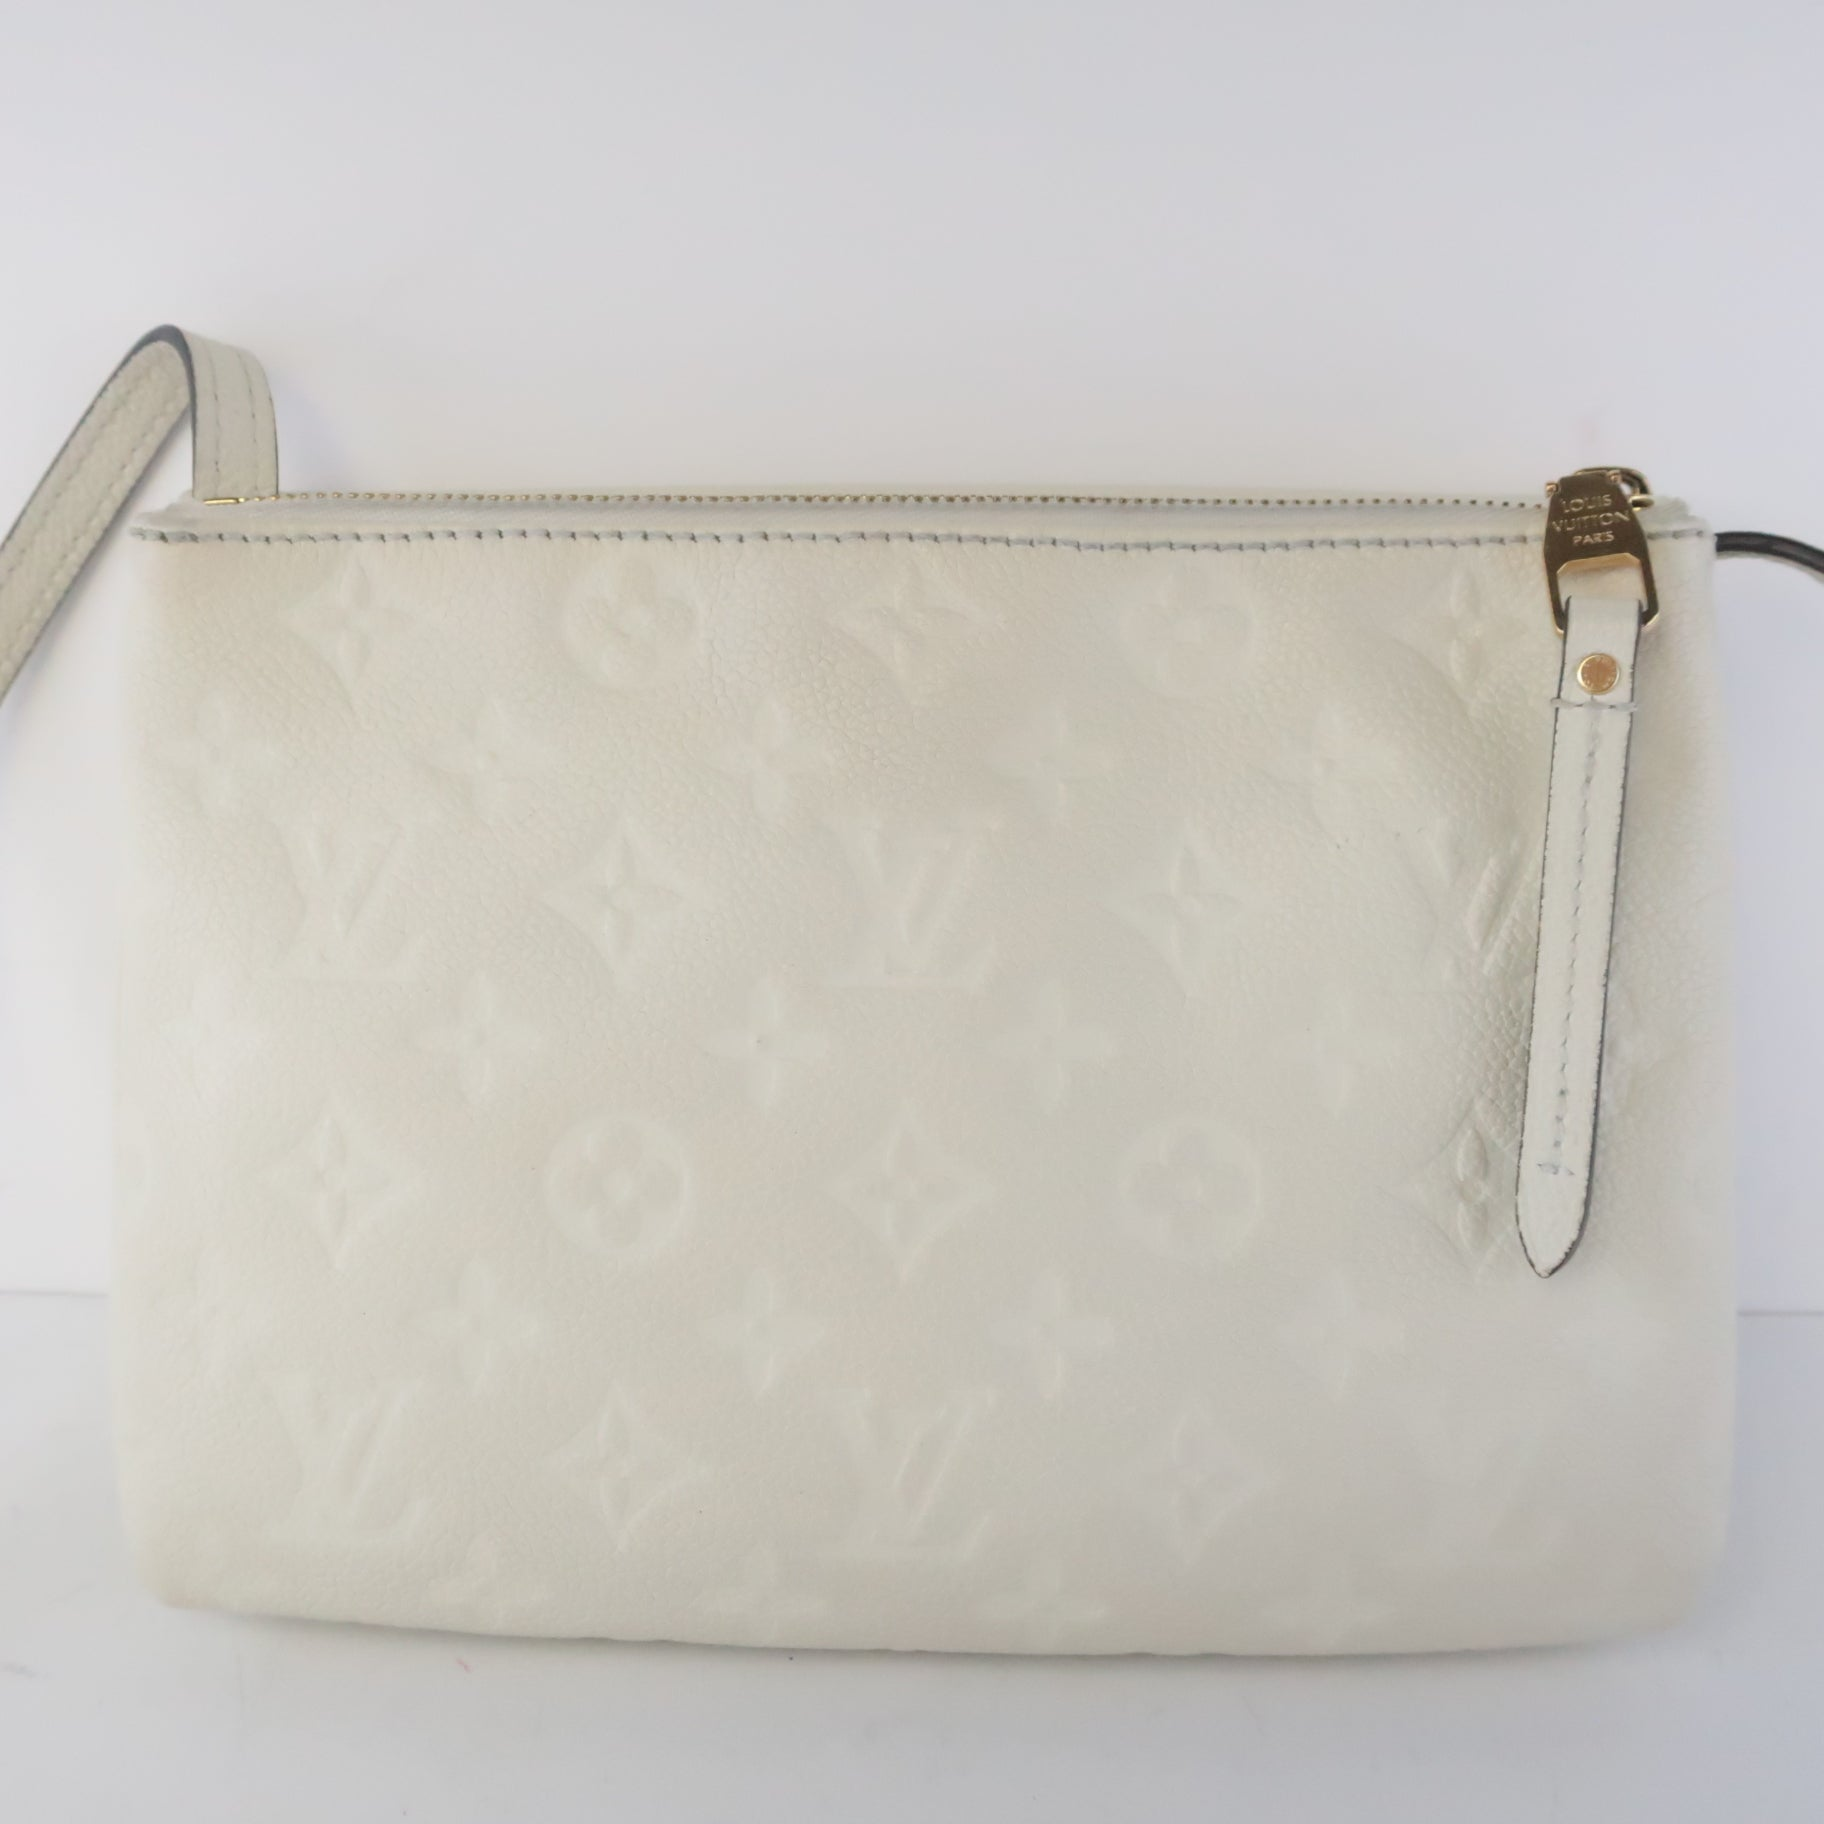 How To Clean Your White Luxury Handbag and Make Sure It Stays White How Do You Keep White Leather From Turning Yellow?